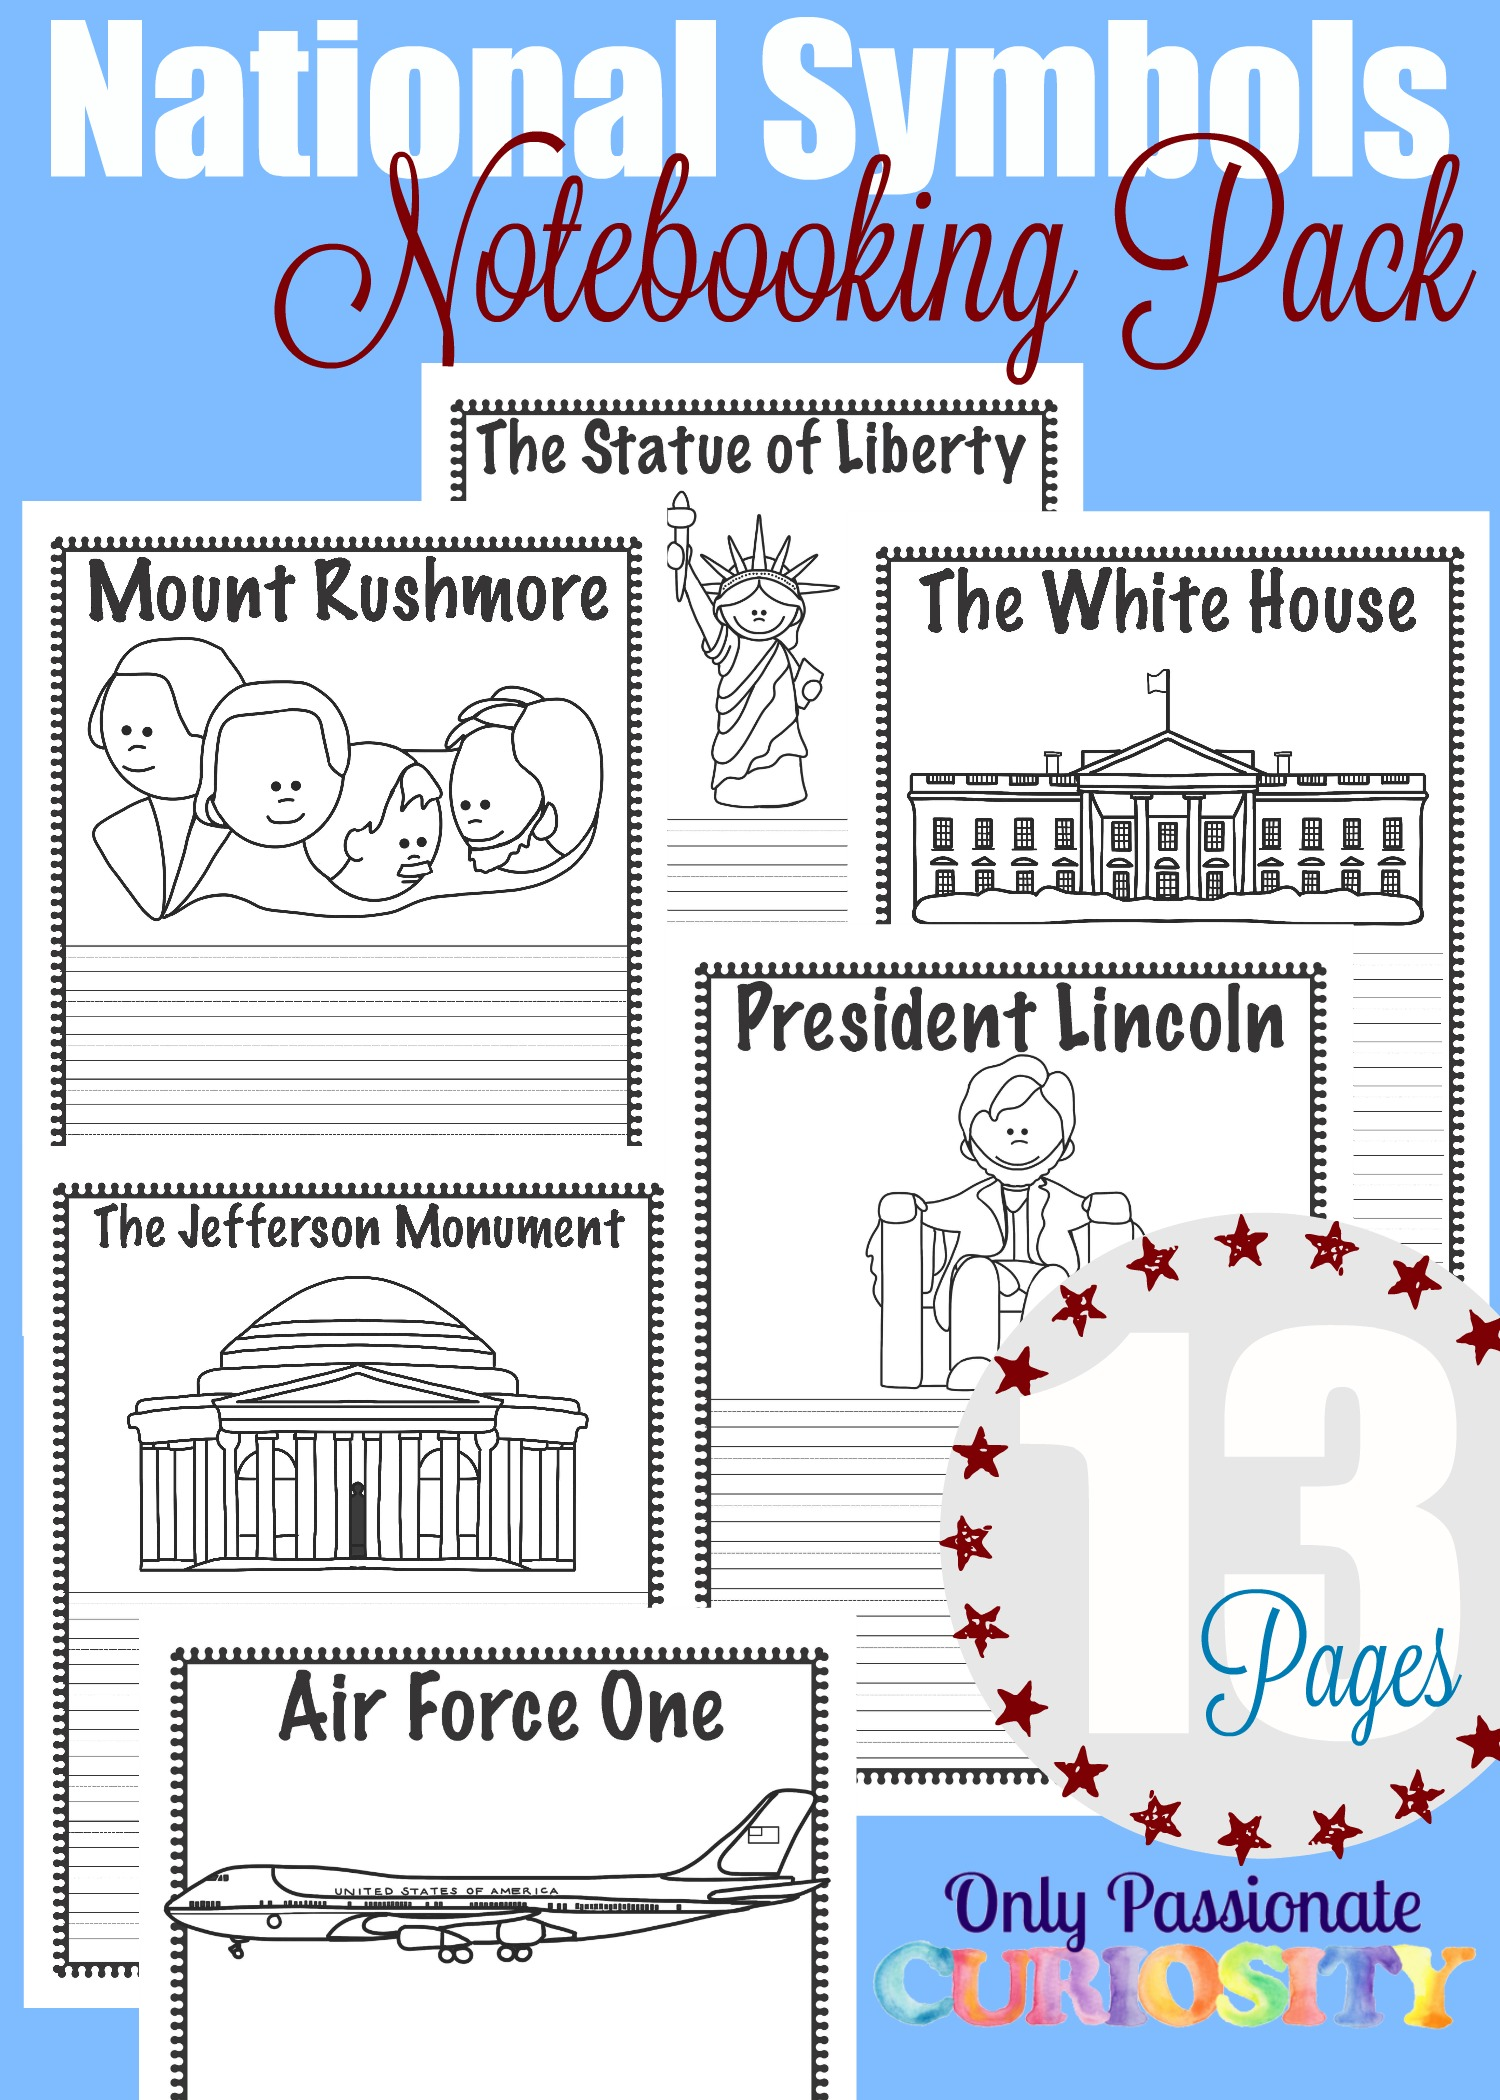 National Symbols Notebooking Pack